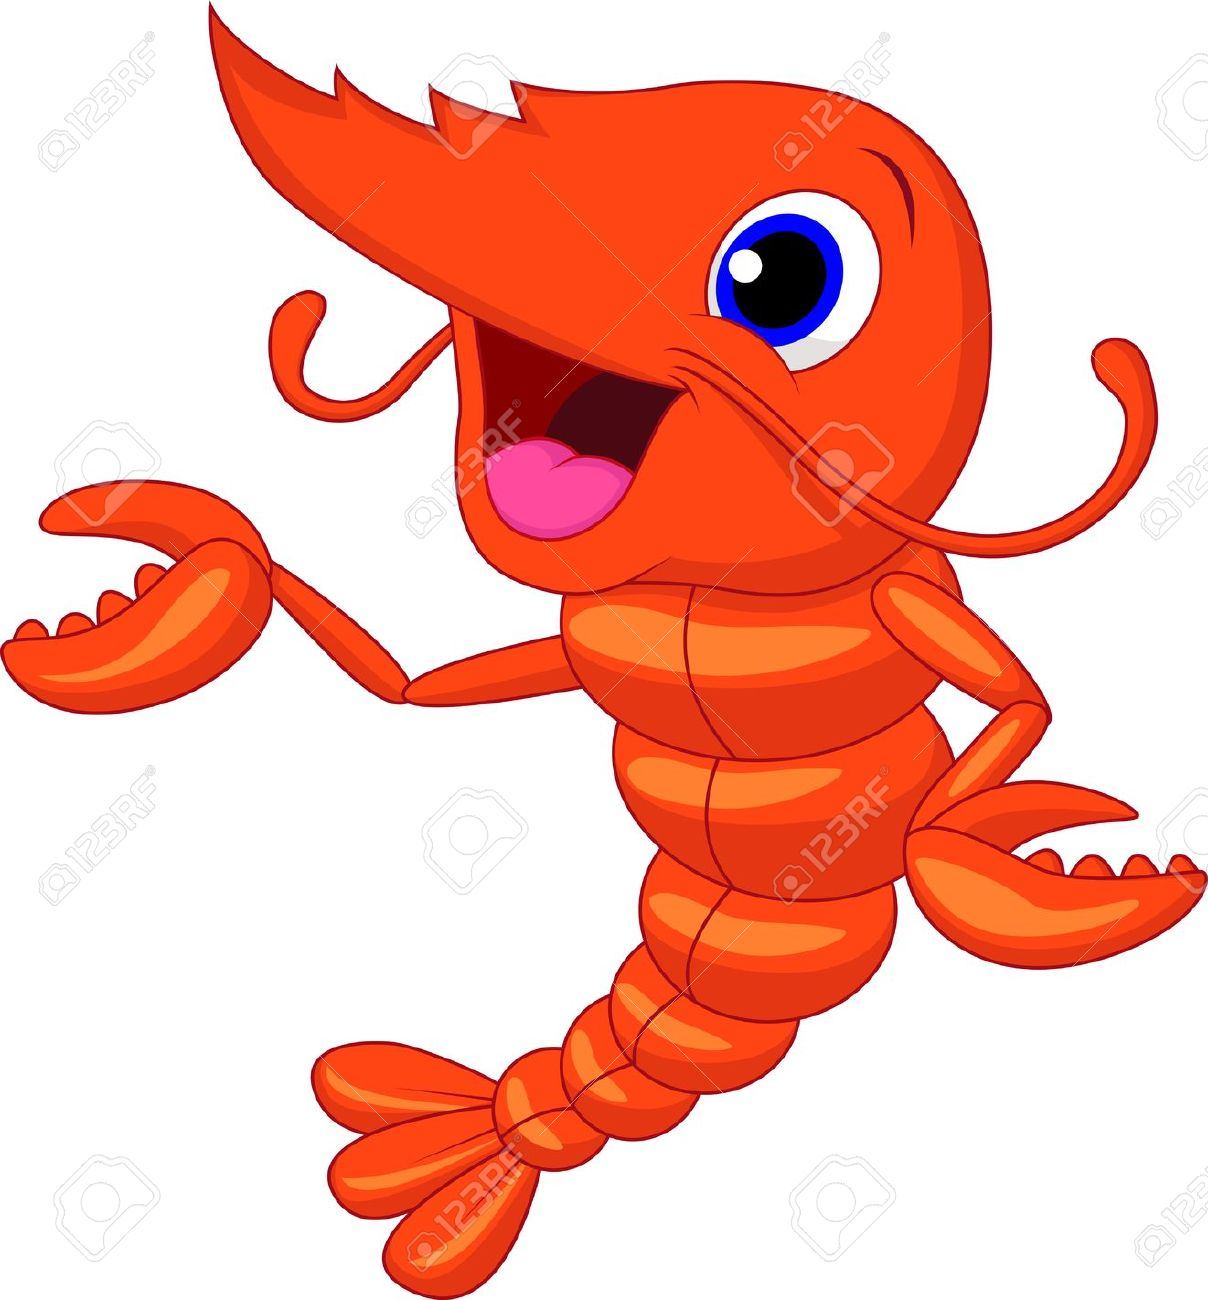 Crustacean clipart #10, Download drawings